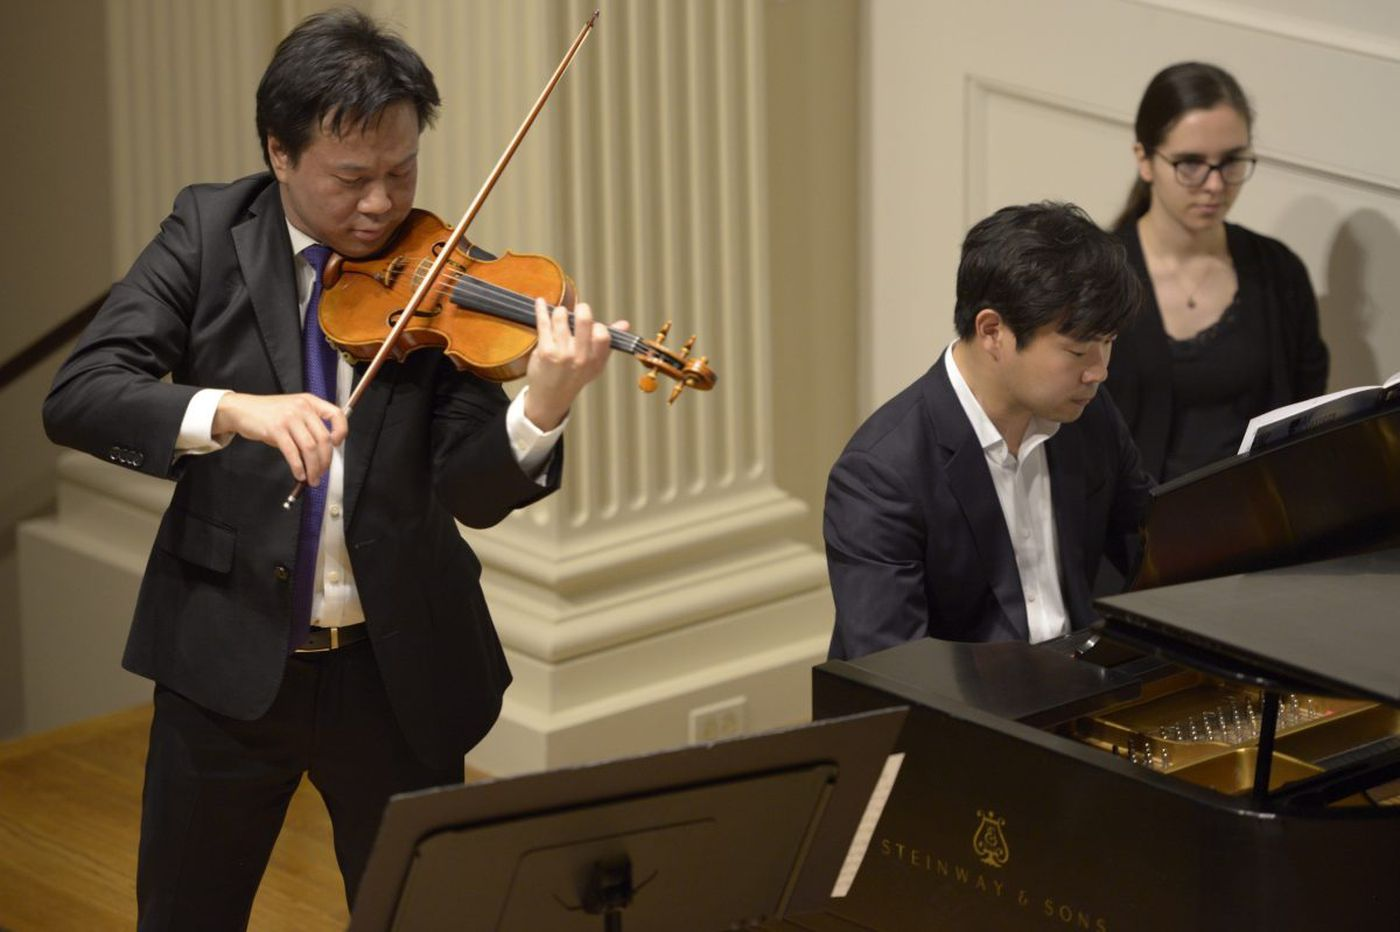 In Astral Artists recital, portrait of the Brothers Chooi